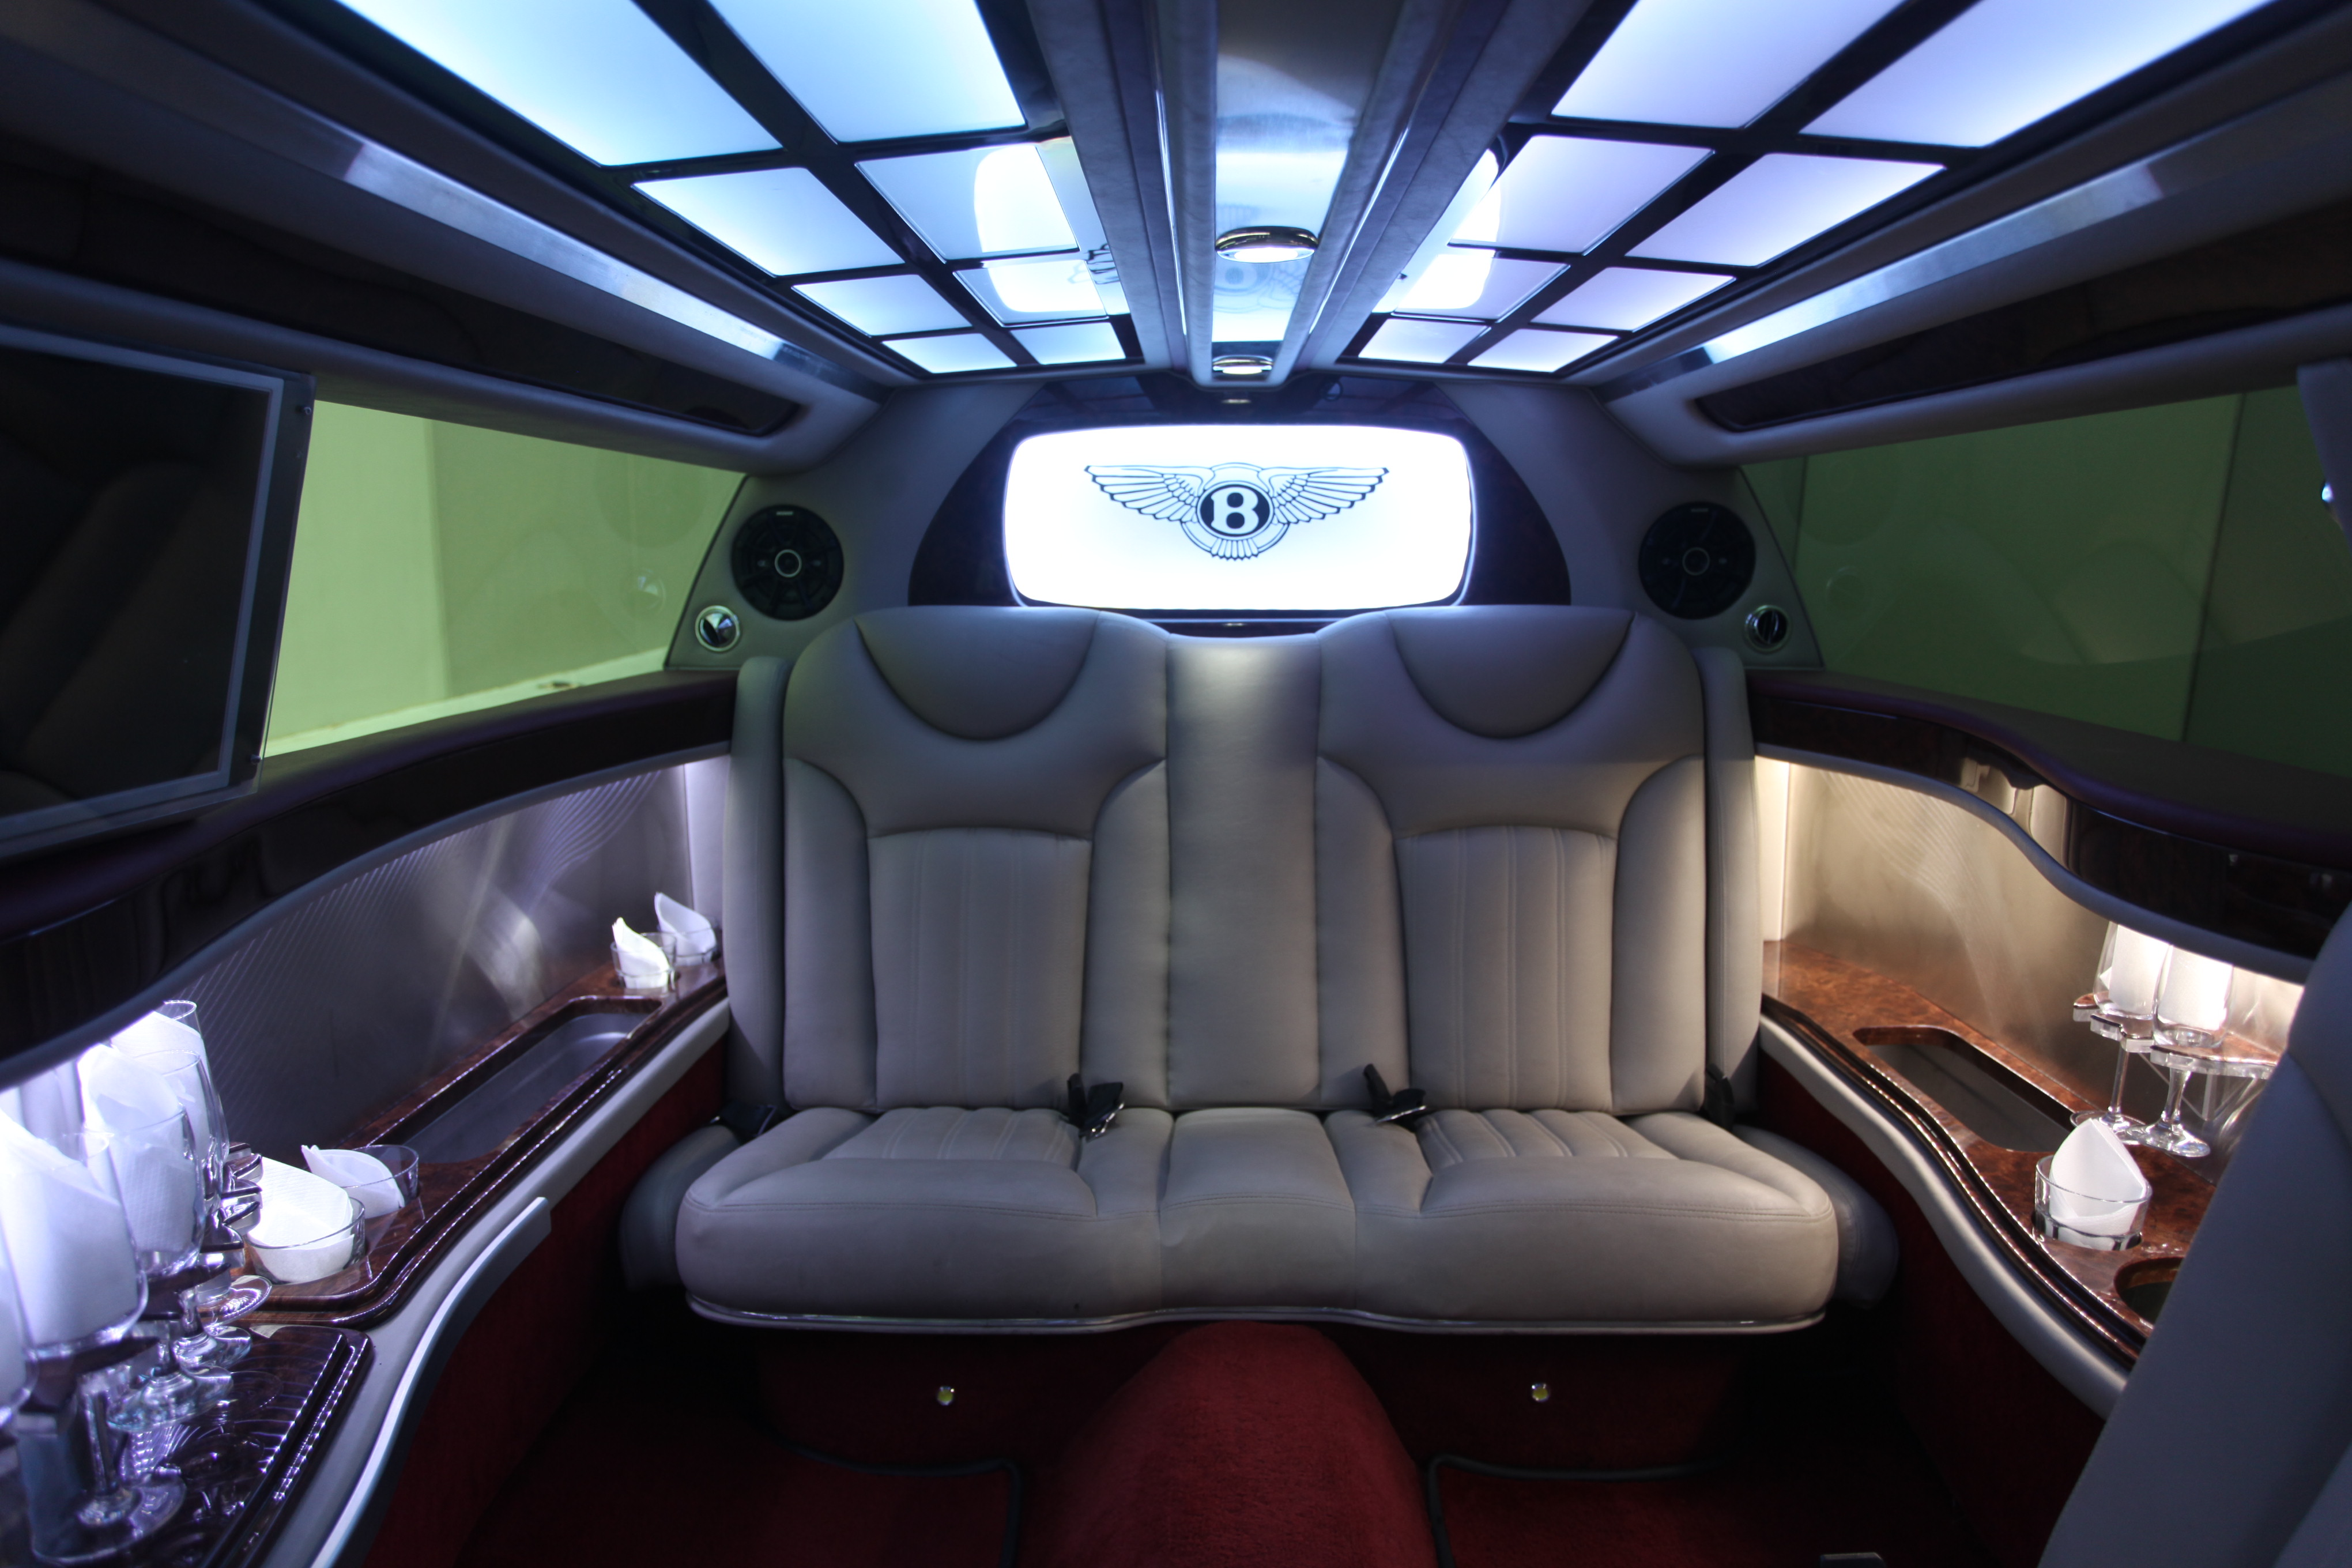 Bentley Limousine Day View Interior Seats Boss Limo Melbourne